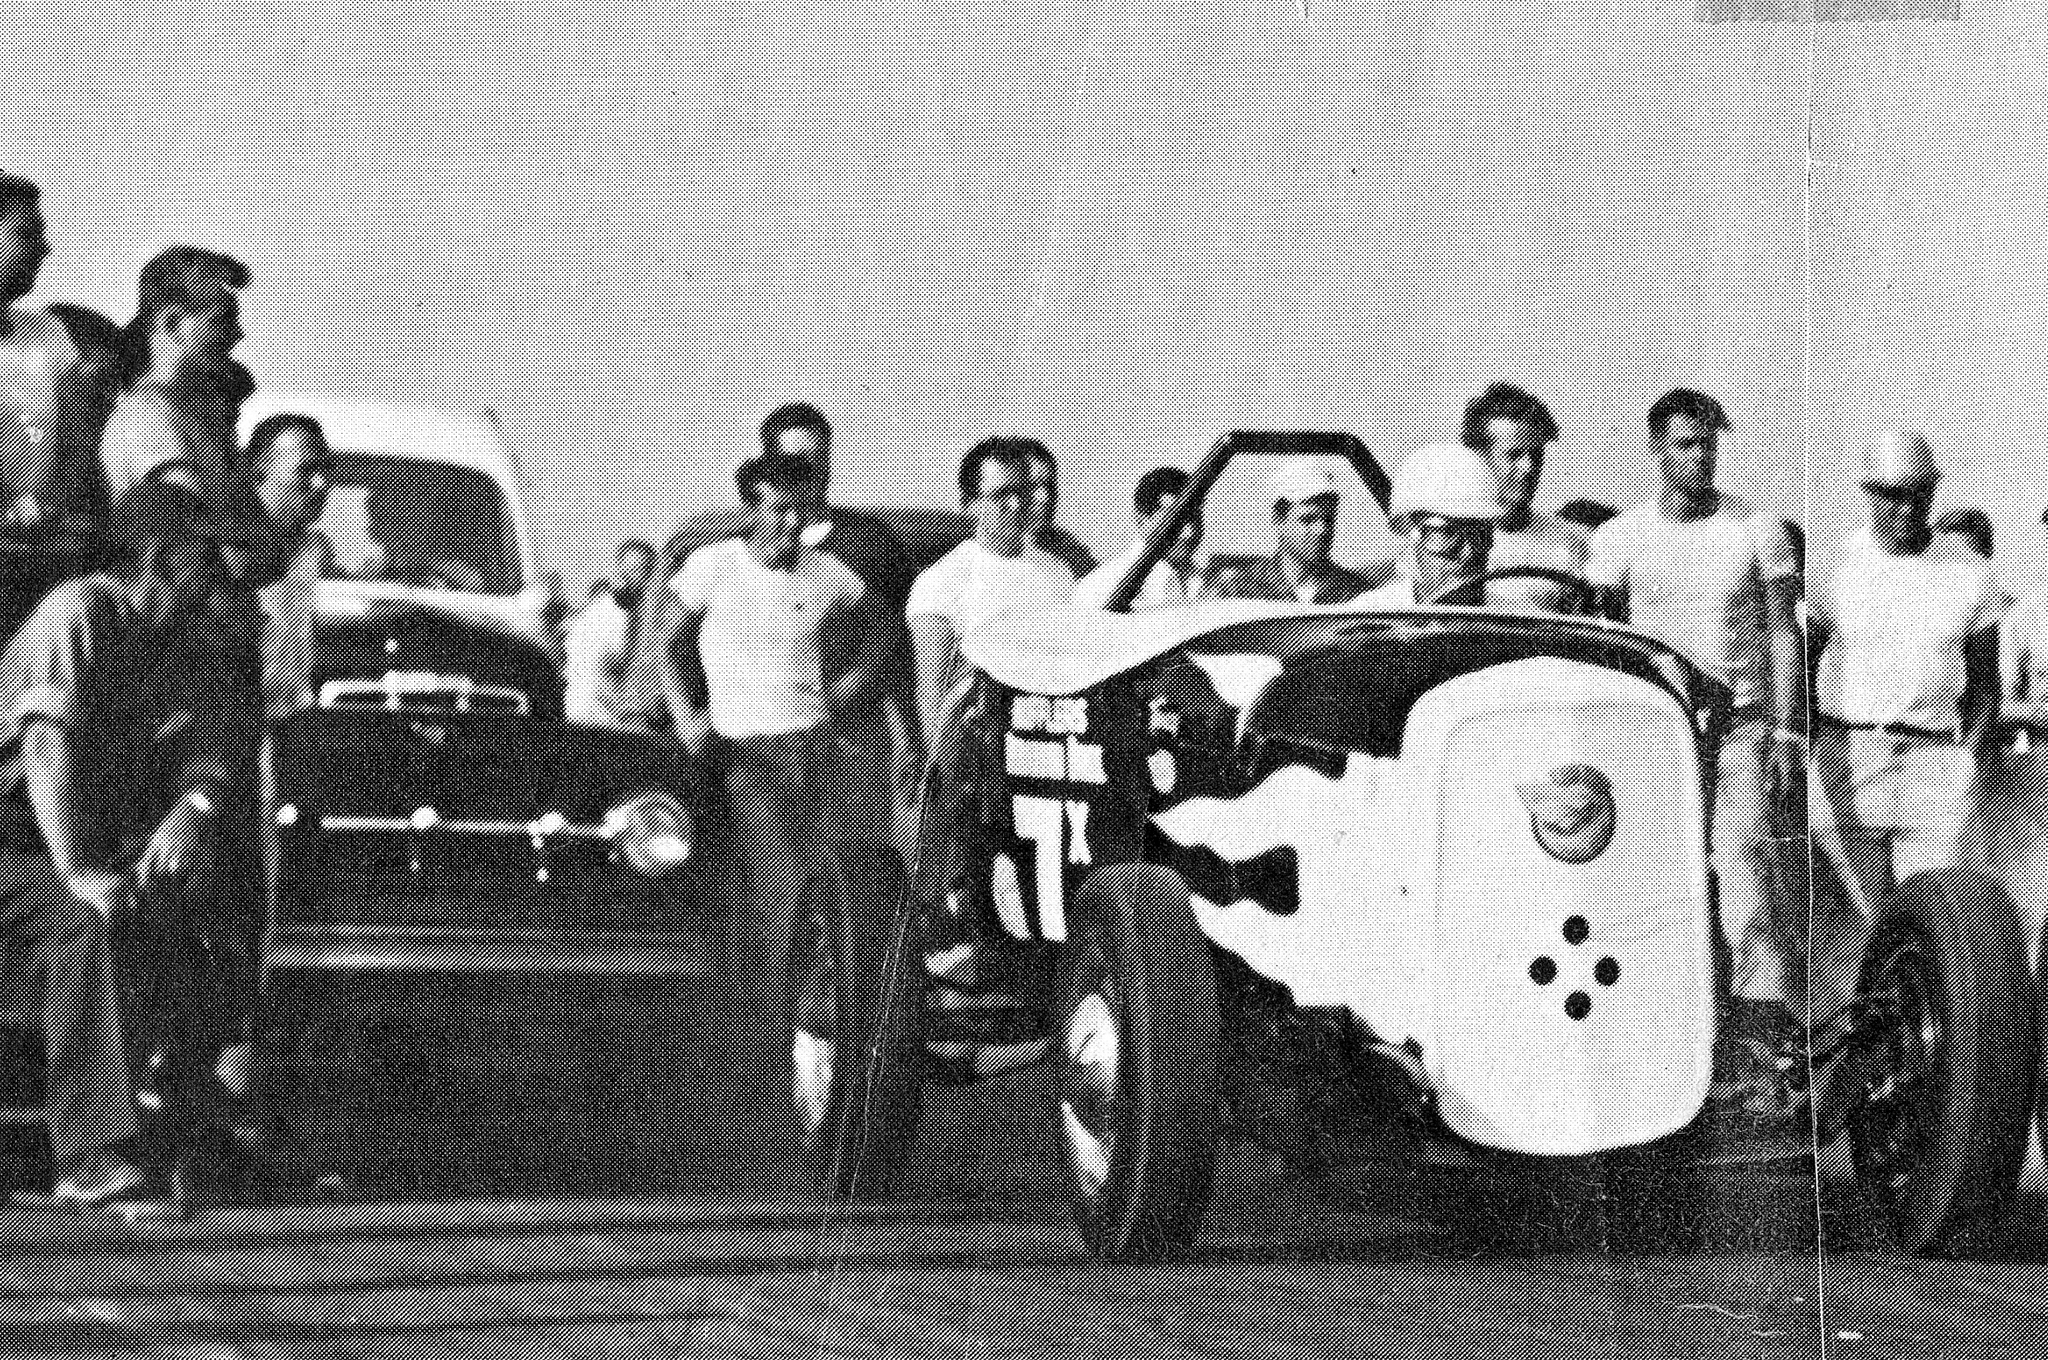 Leslie Long took this photo of the roadster and the Berardini push truck at the Santa Ana drags. Pat's daughter Susan turned it into a poster, and she provided this rendering for our story. Tony is driving the roadster, Pat is driving the push truck, and seated in front of the crowd is Nick Harrell, who built the engine for Pat's Deuce.